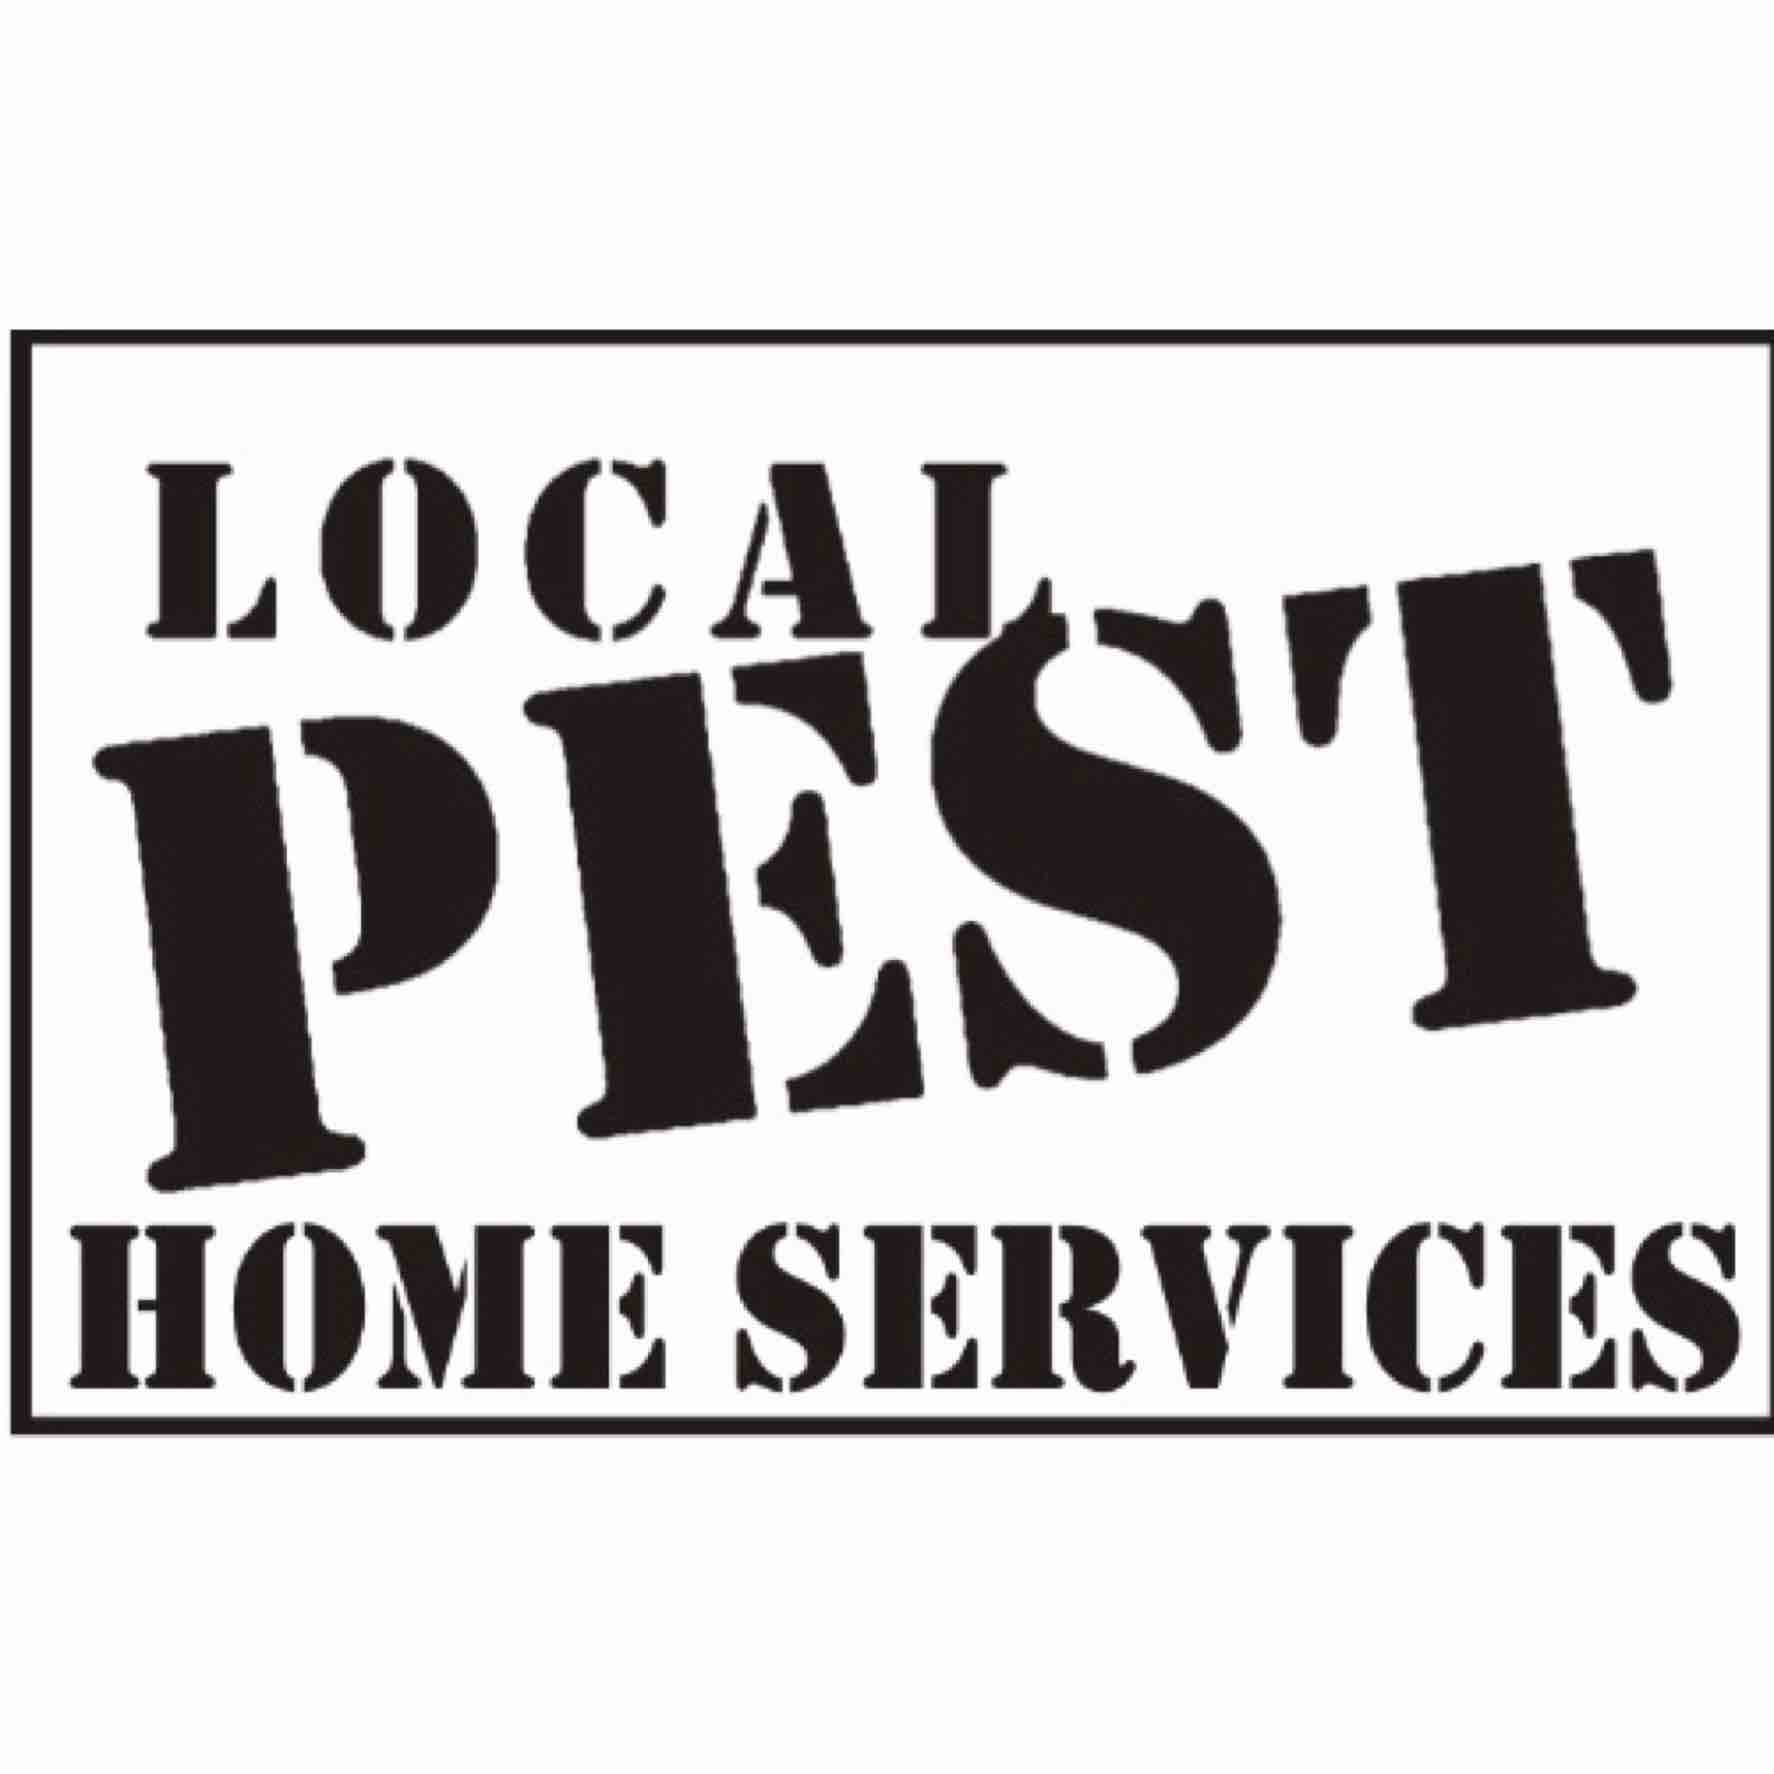 Local Pest Home Services